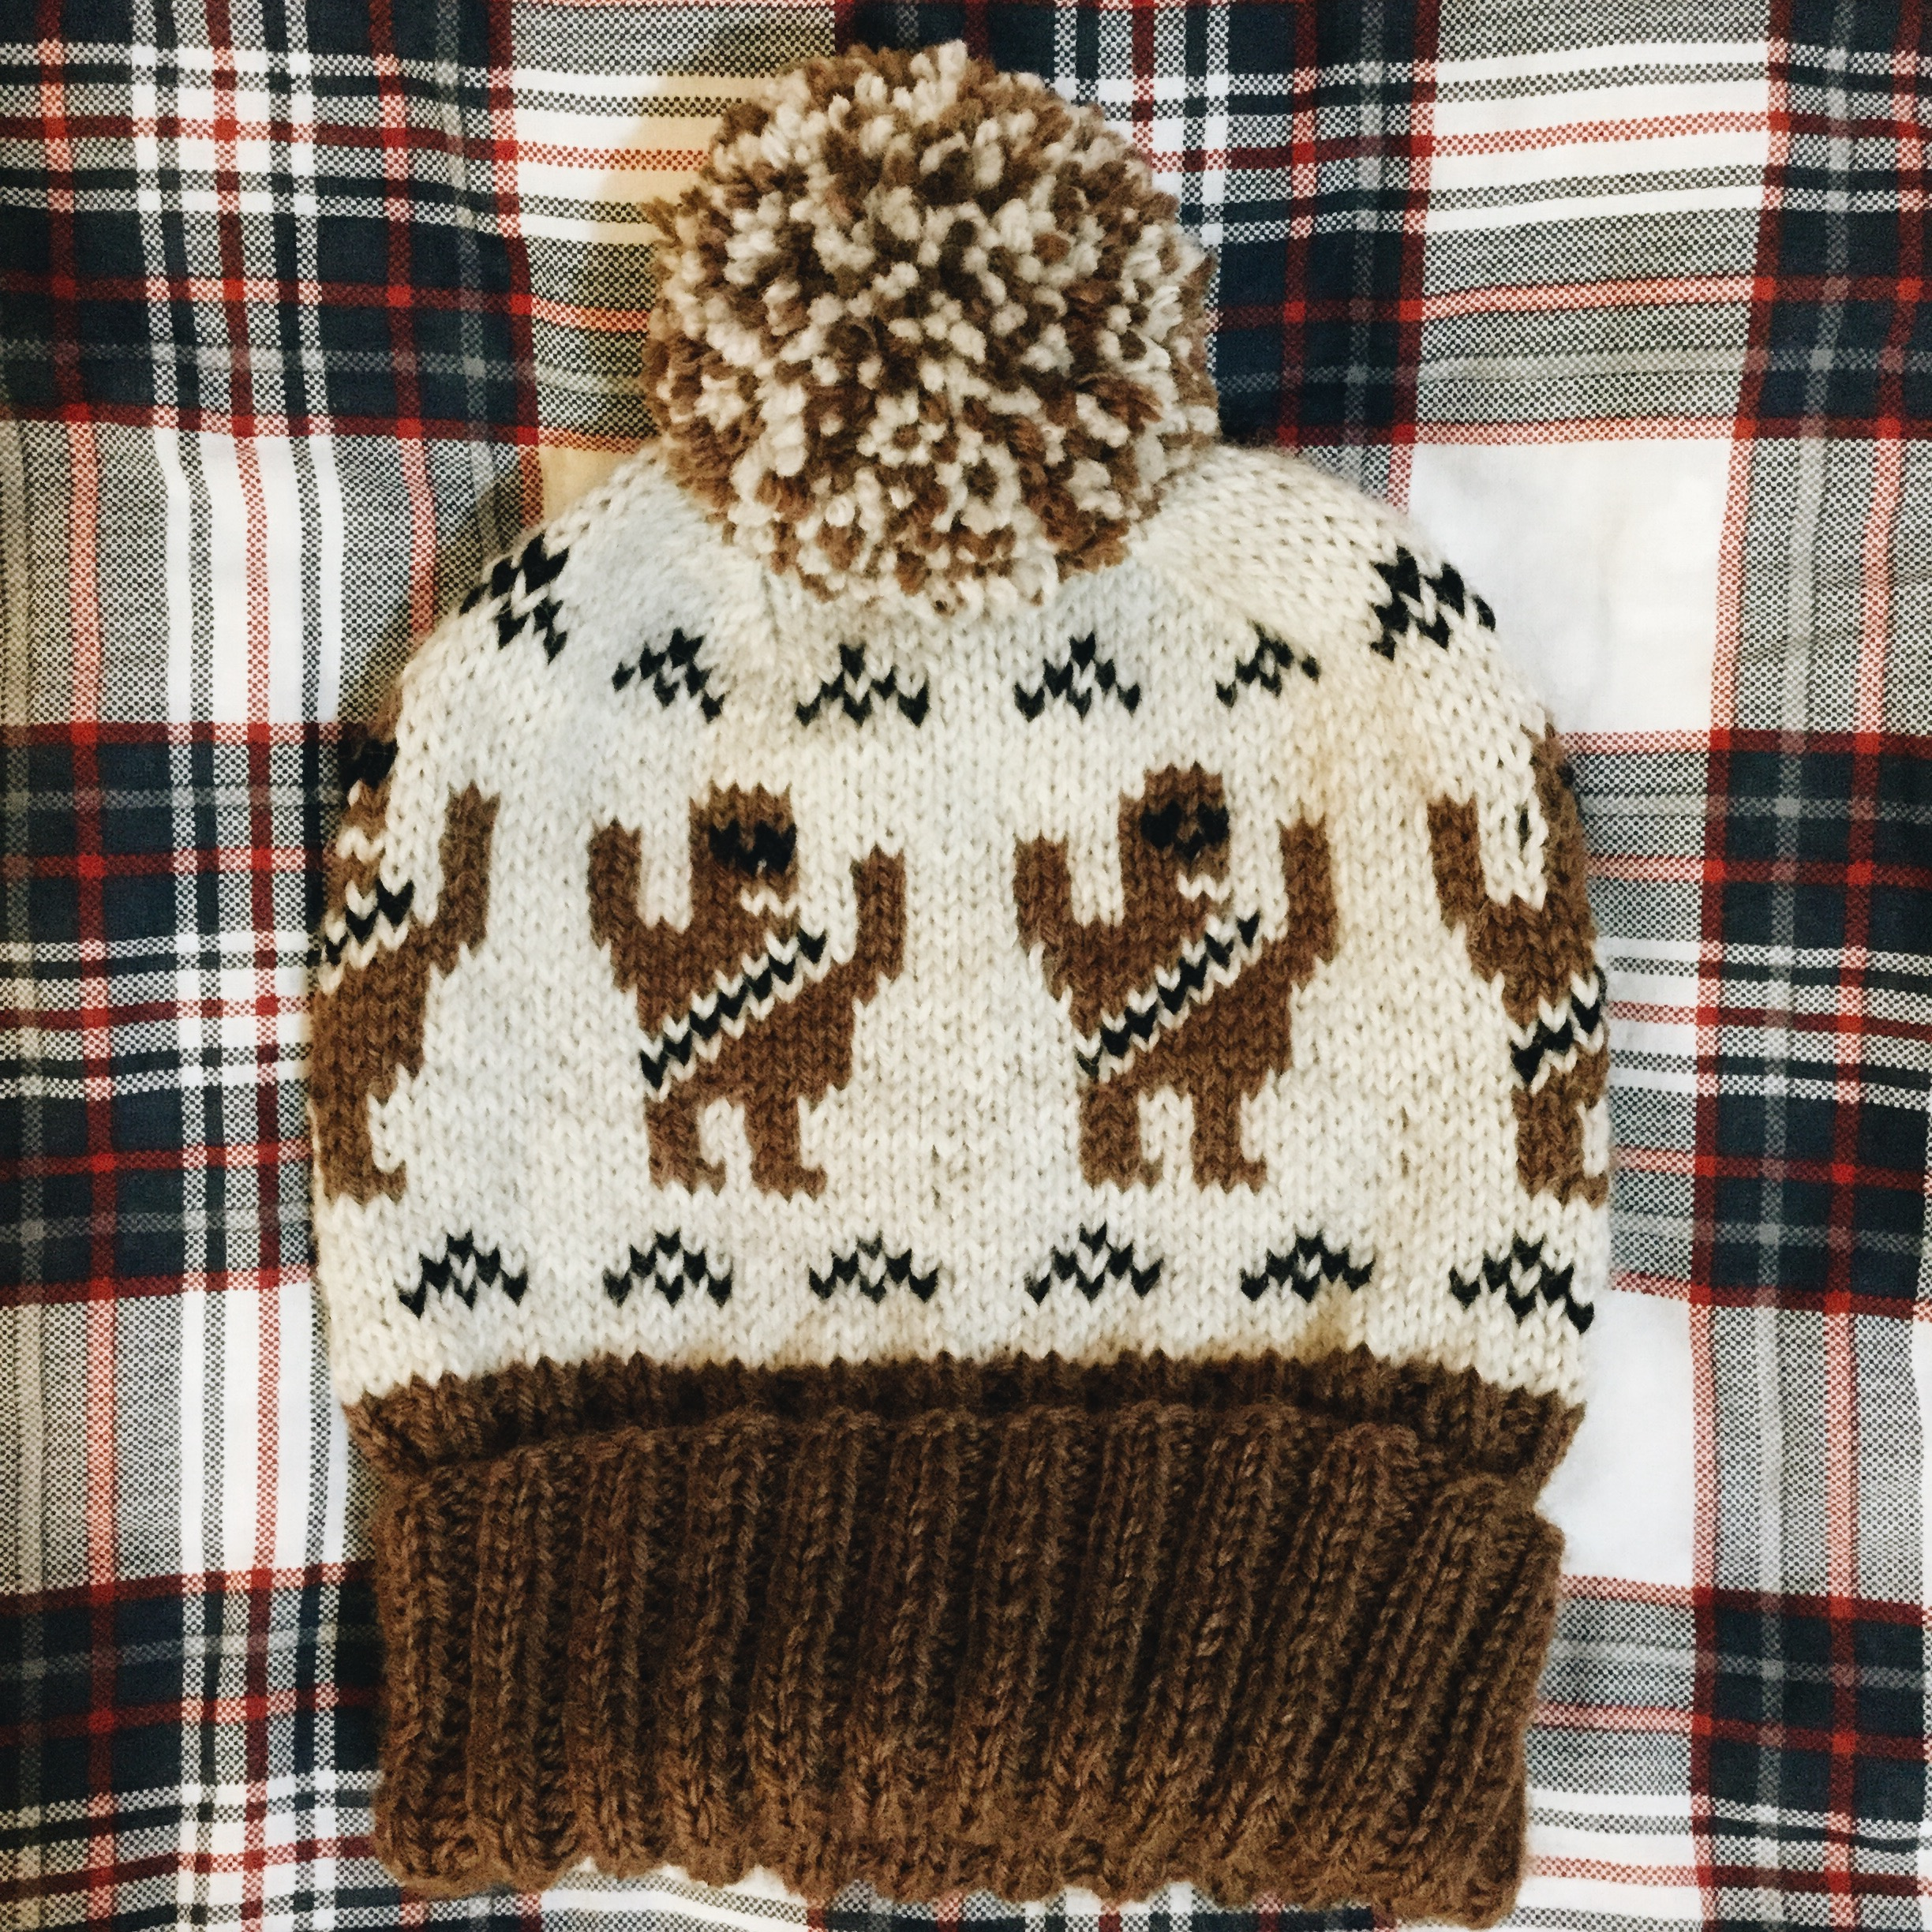 Chewbacca Beanie · A.darling knits · Online Store Powered by Storenvy 4bb1373c641